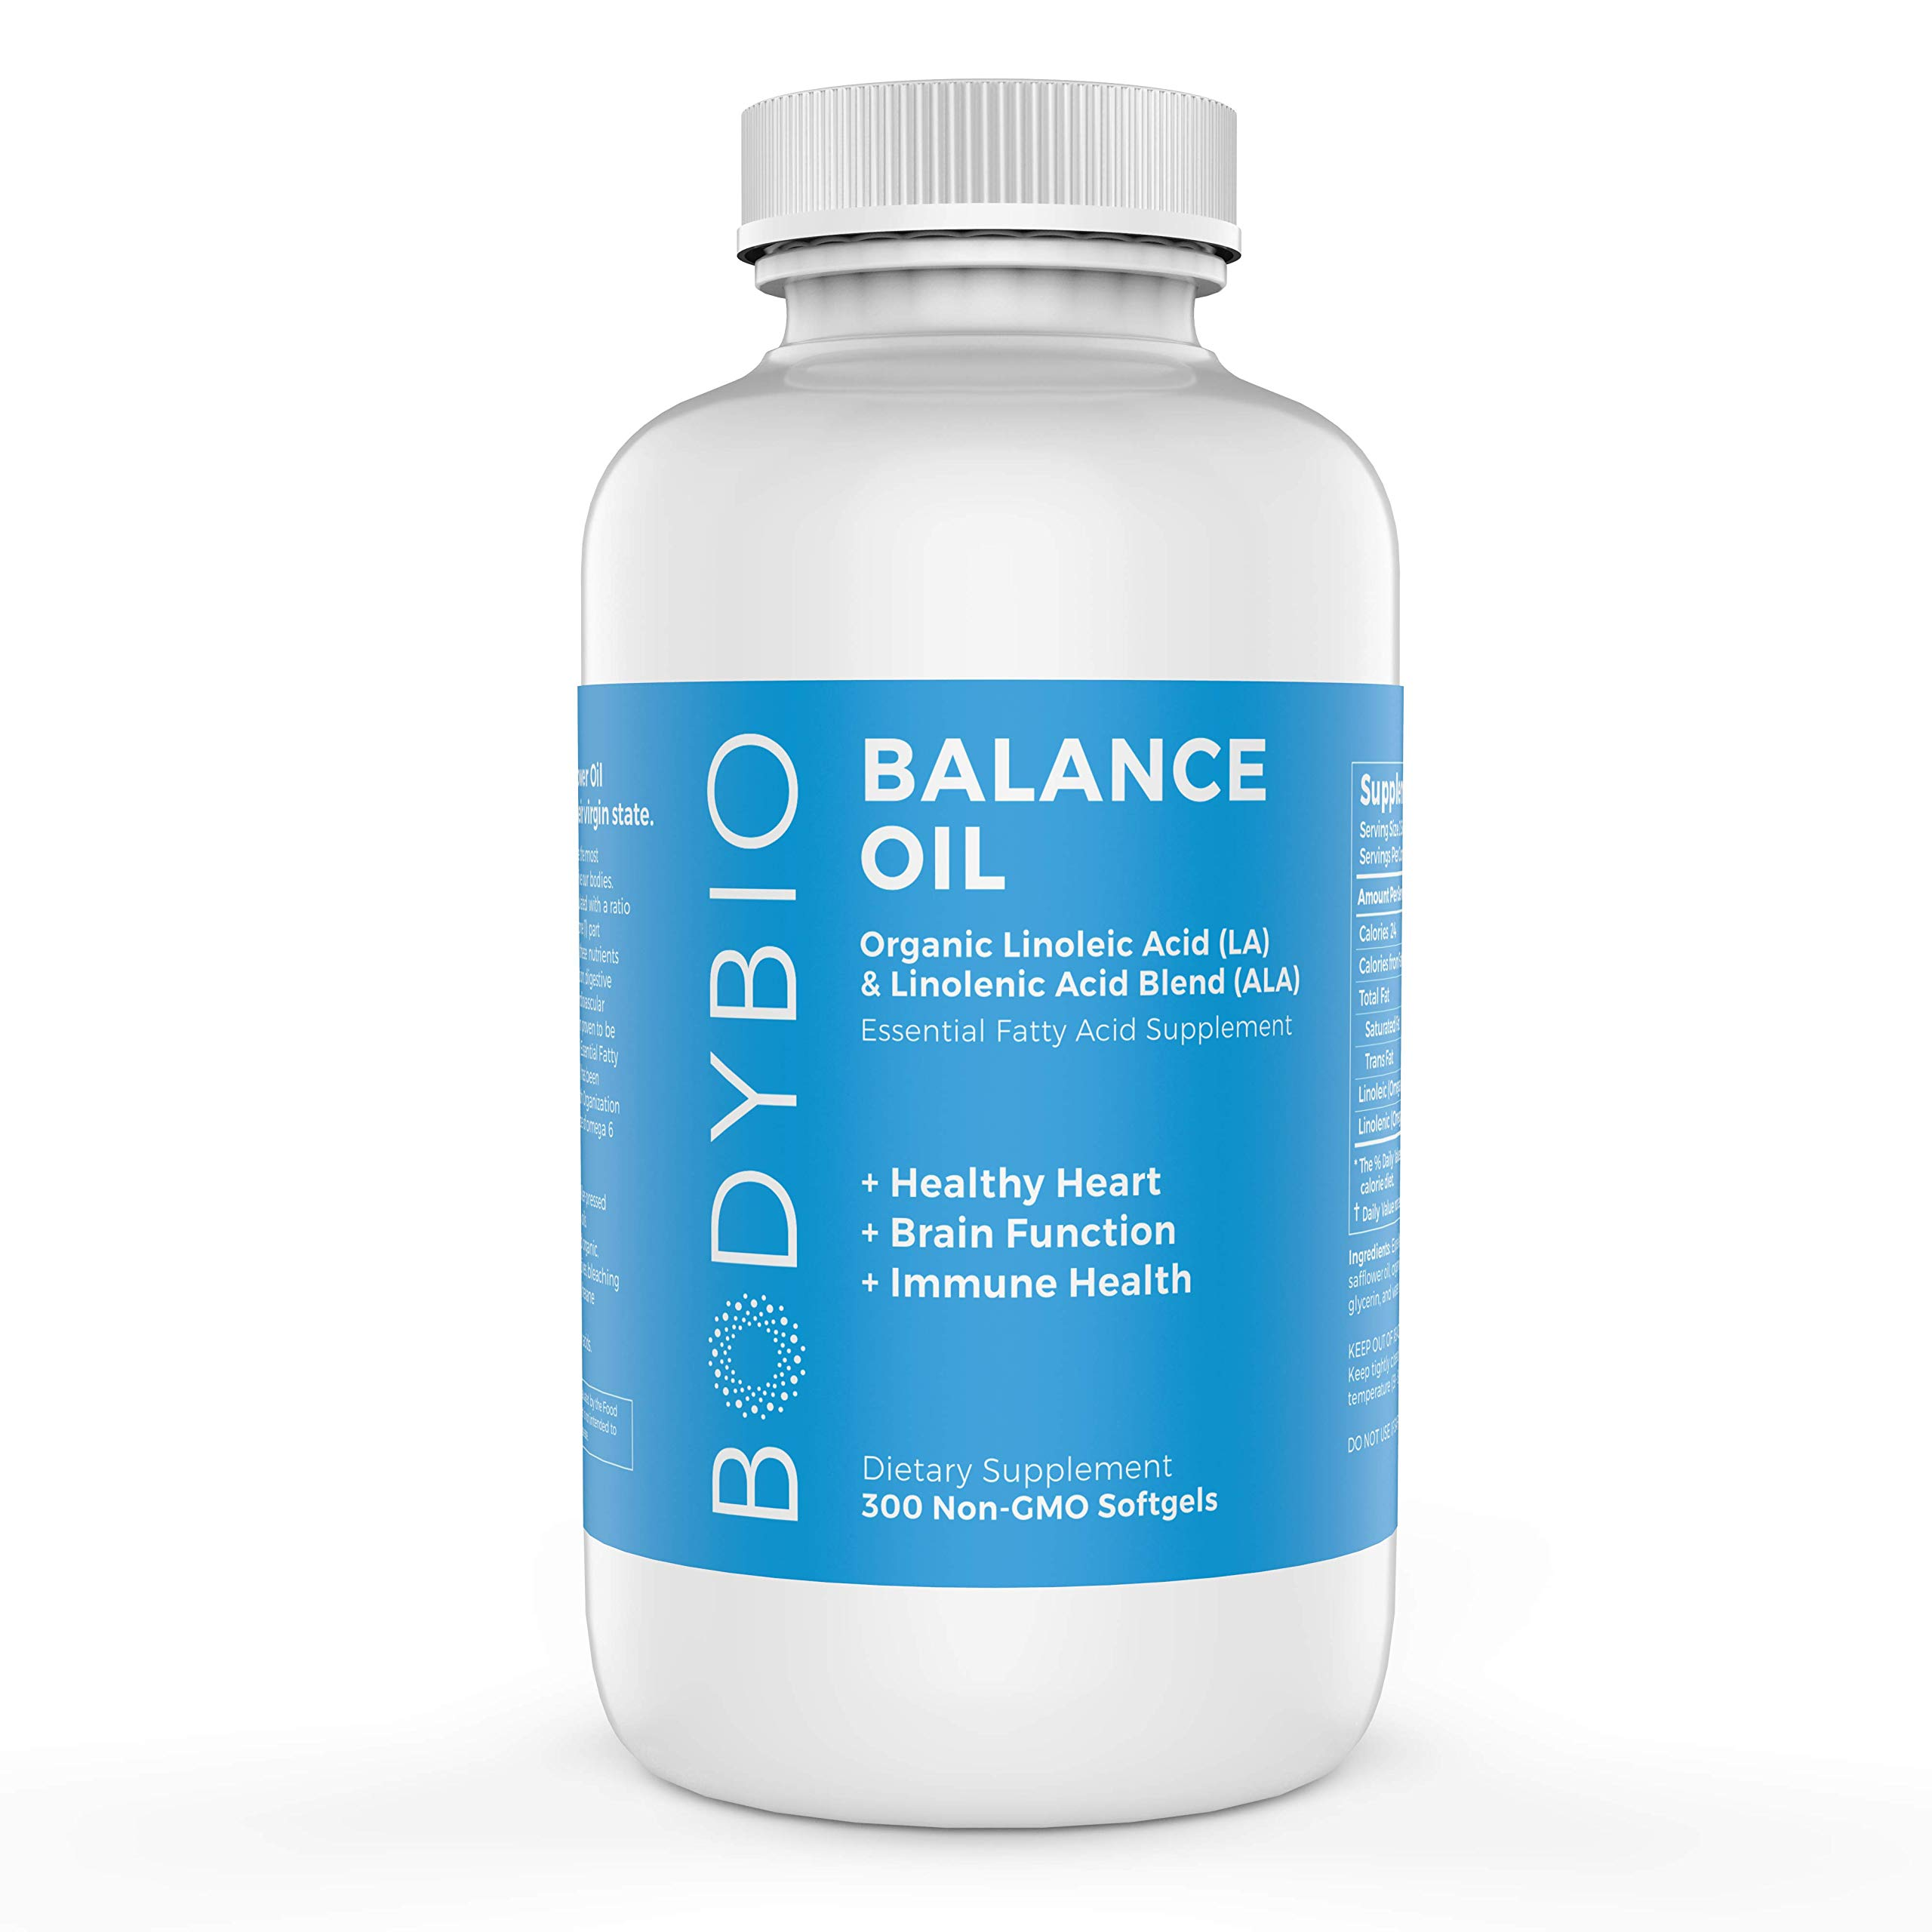 BodyBio Balance Oil, Essential Fatty Acids, Organic Safflower and Flax Seed Oil Blend, 4:1 LA to ALA, 300 Softgels